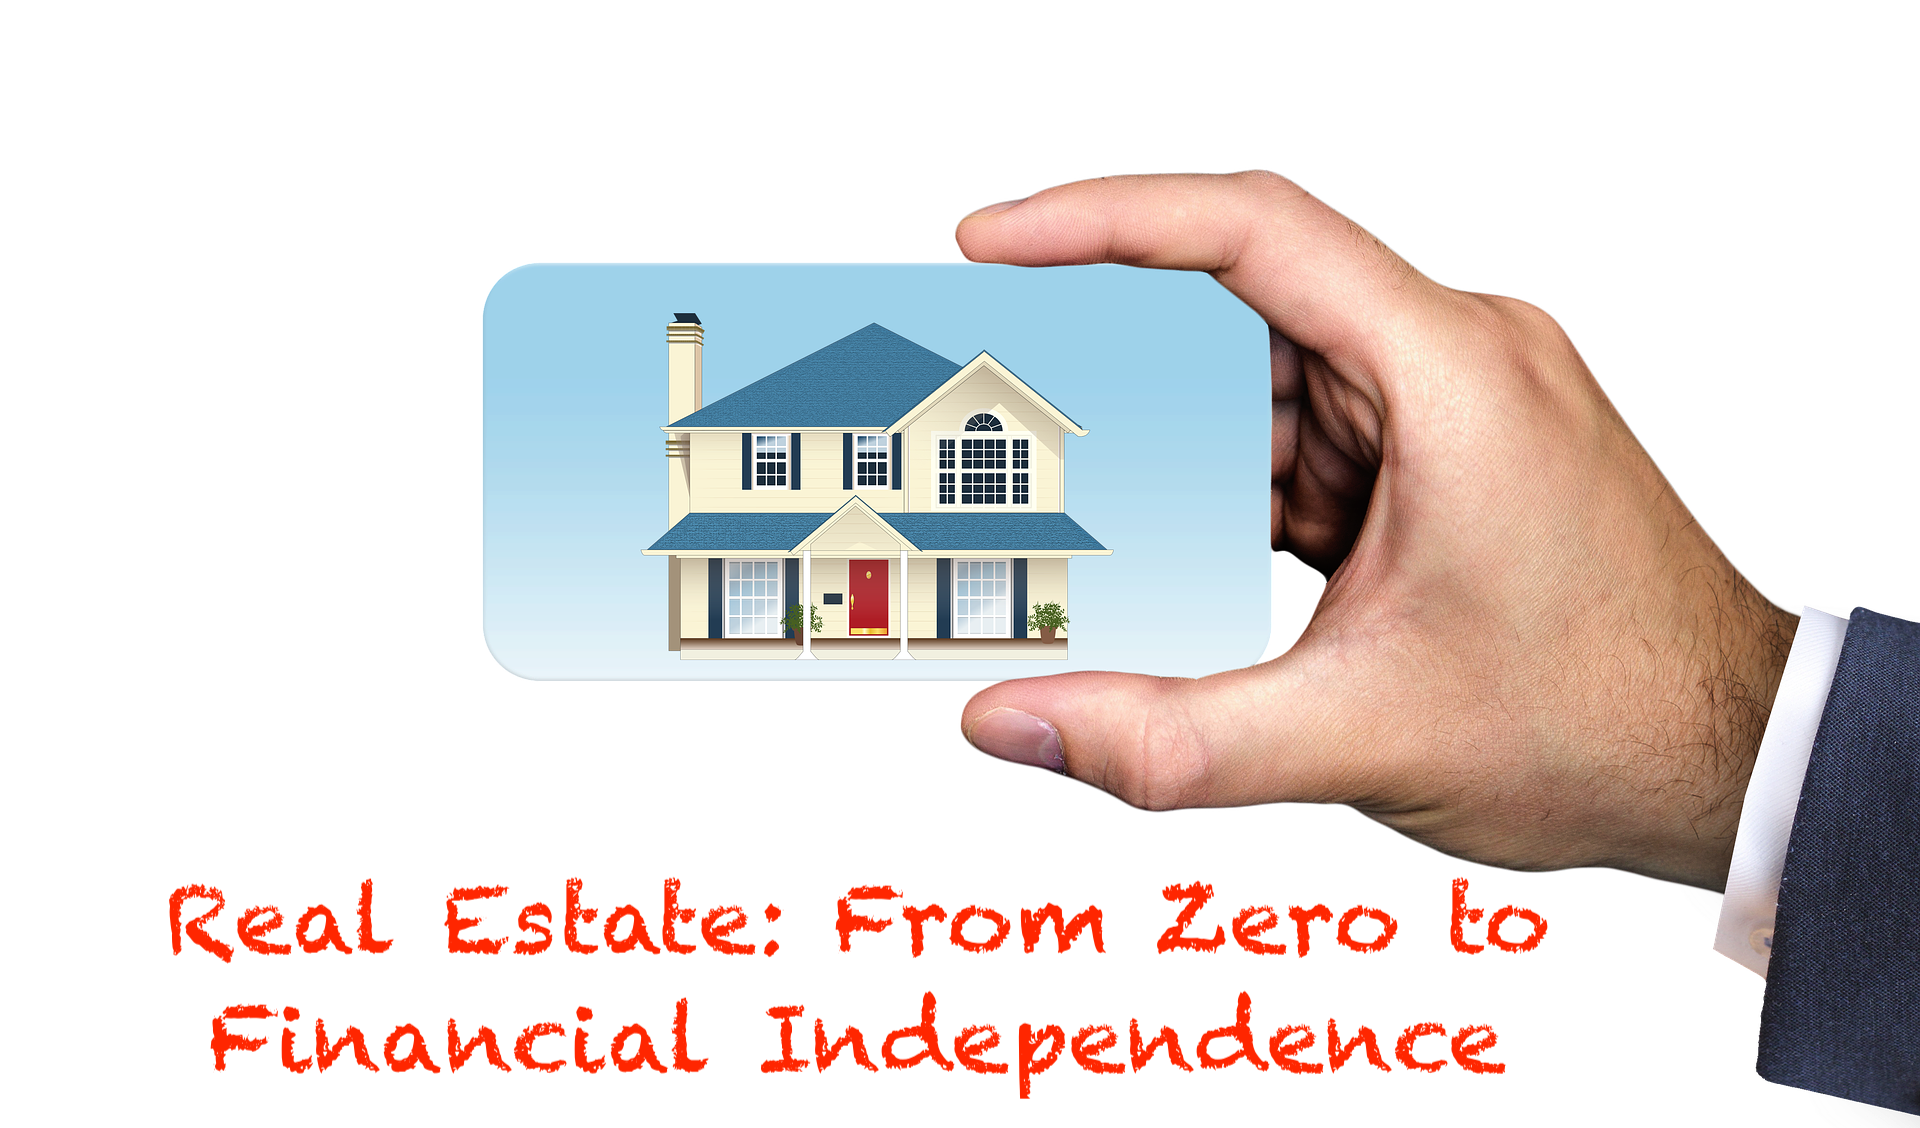 Real Estate: From Zero to Financial Independence